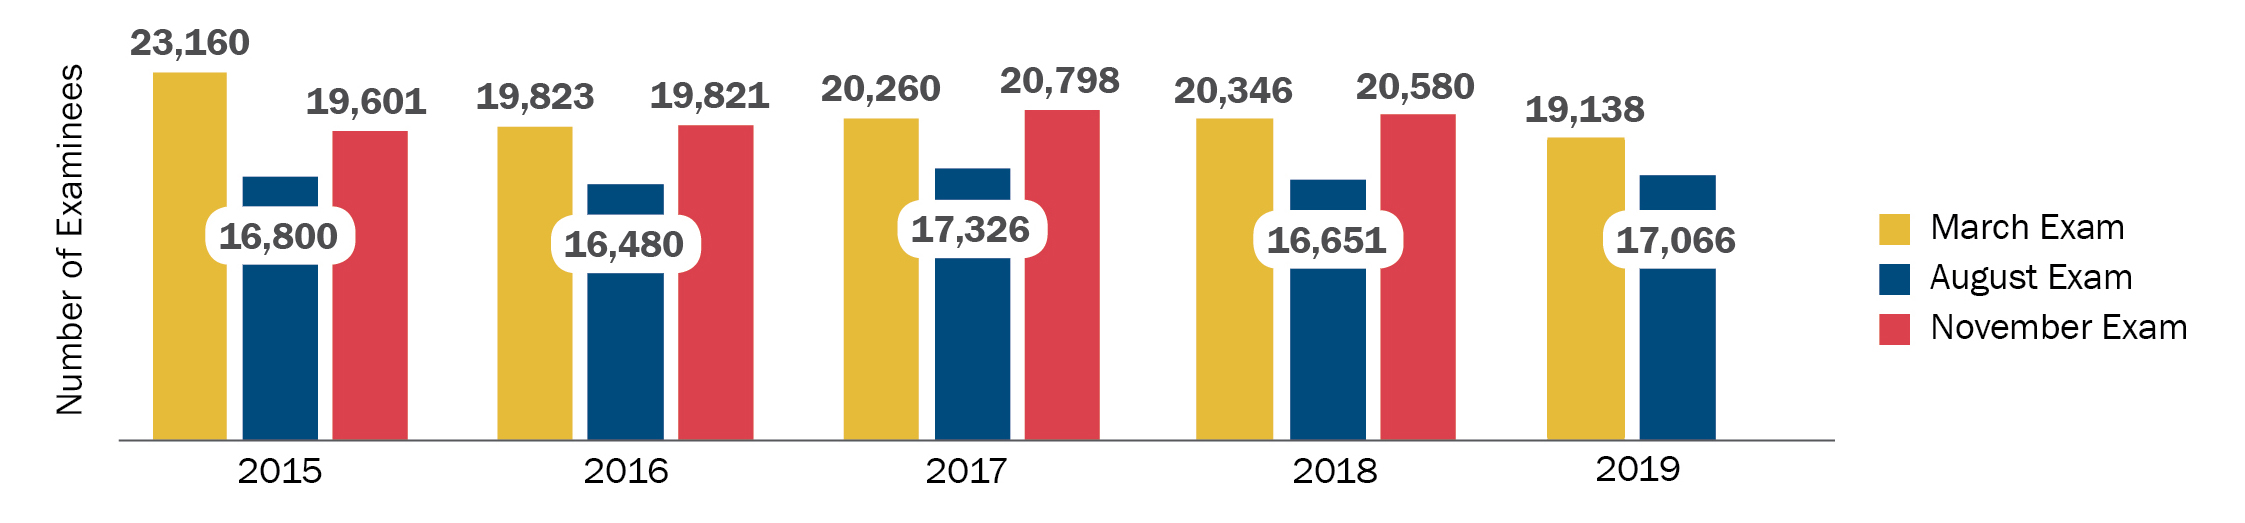 Number of MPRE Examinees 2015–2019: This bar graph shows the number of MPRE examinees for the March, August, and November administrations of the exam in the past five years. In 2015, there were 23,160 examinees in March, 16,800 in August, and 19,601 in November; in 2016, there were 19,823 examinees in March, 16,480 in August, and 19,821 in November; in 2017 there were 20,260 examinees in March, 17,326 in August, and 20,798 in November; in 2018 there were 20,346 examinees in March, 16,651 in August, and 20,580 in November; and in 2019 there were 19,138 examinees in March and 17,066 in August. (The November 2019 MPRE has not yet been administered.)